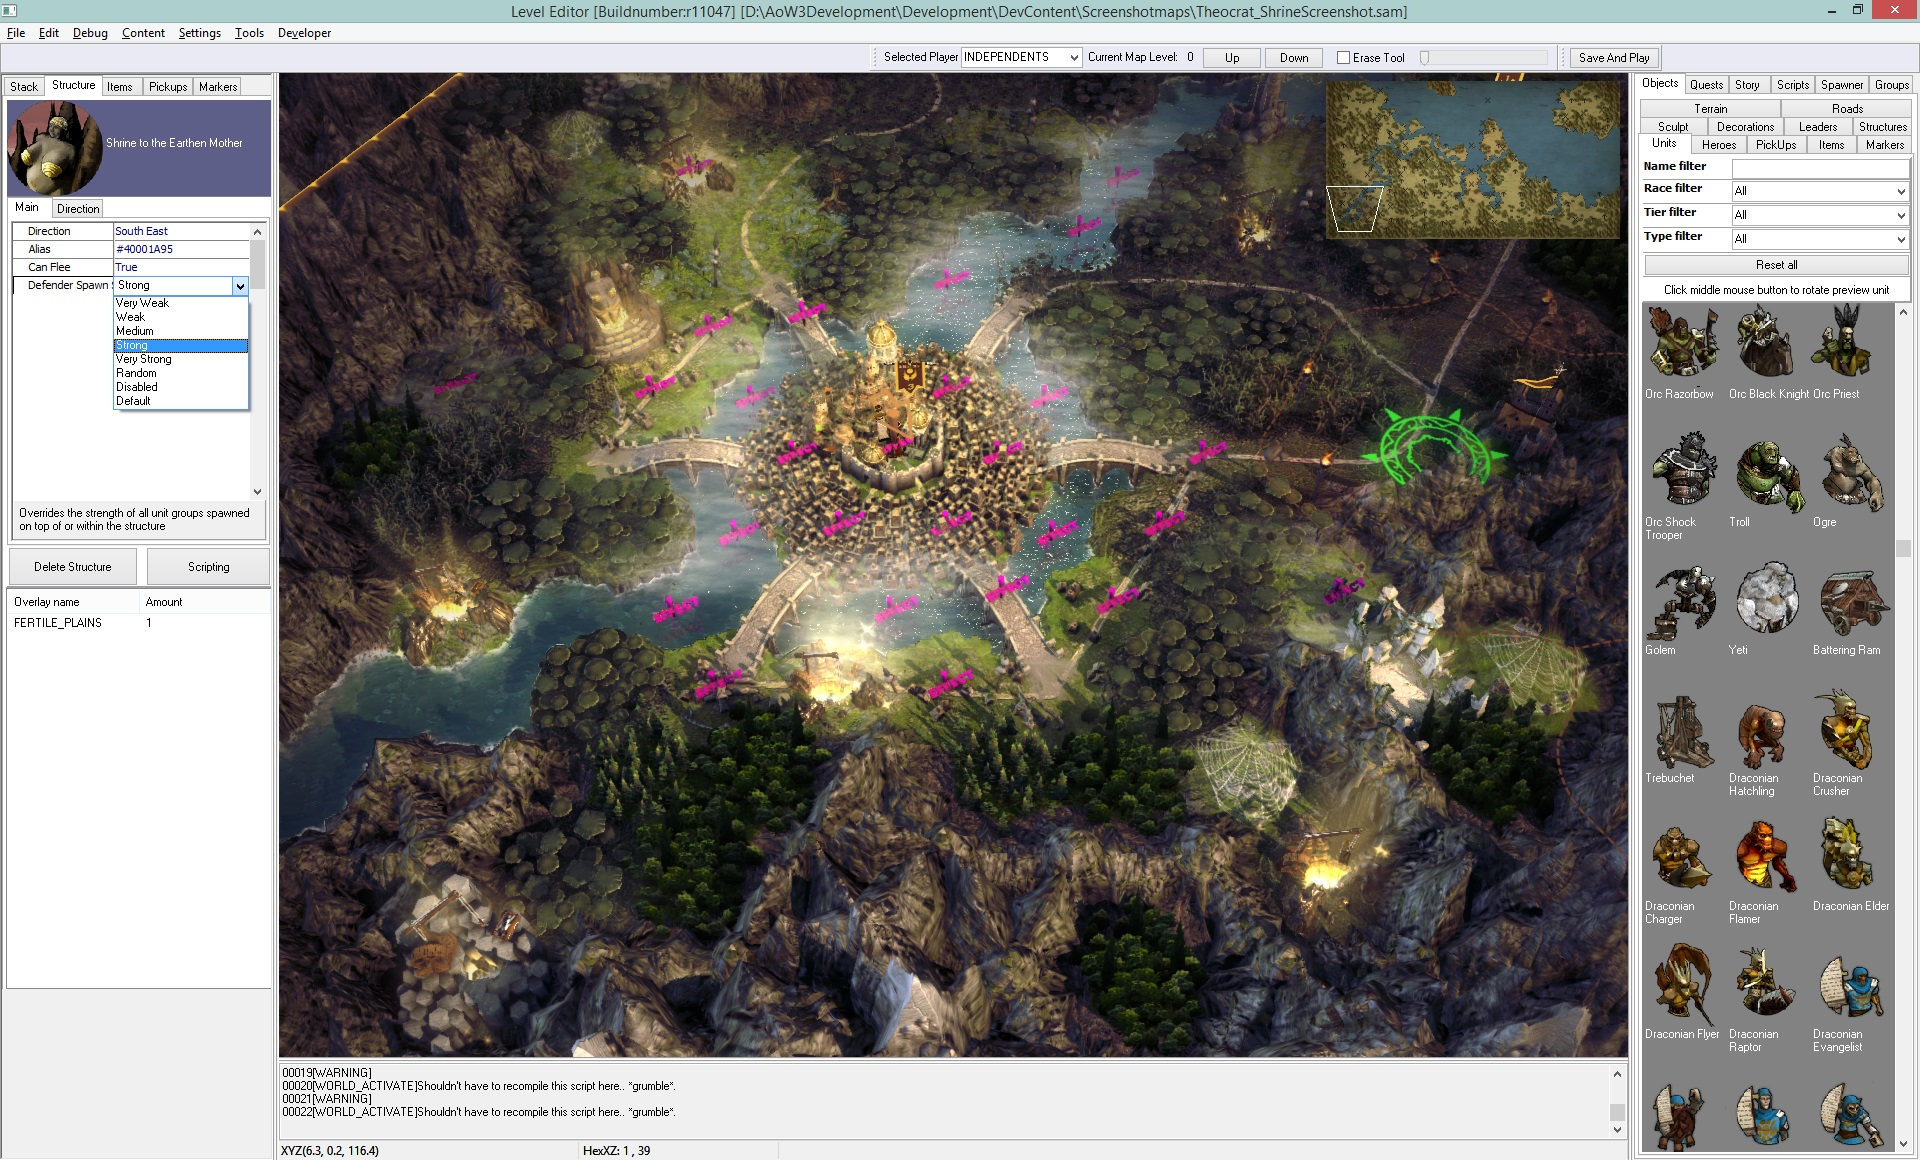 All about The Age of Wonders III Level Editor Age of Wonders III